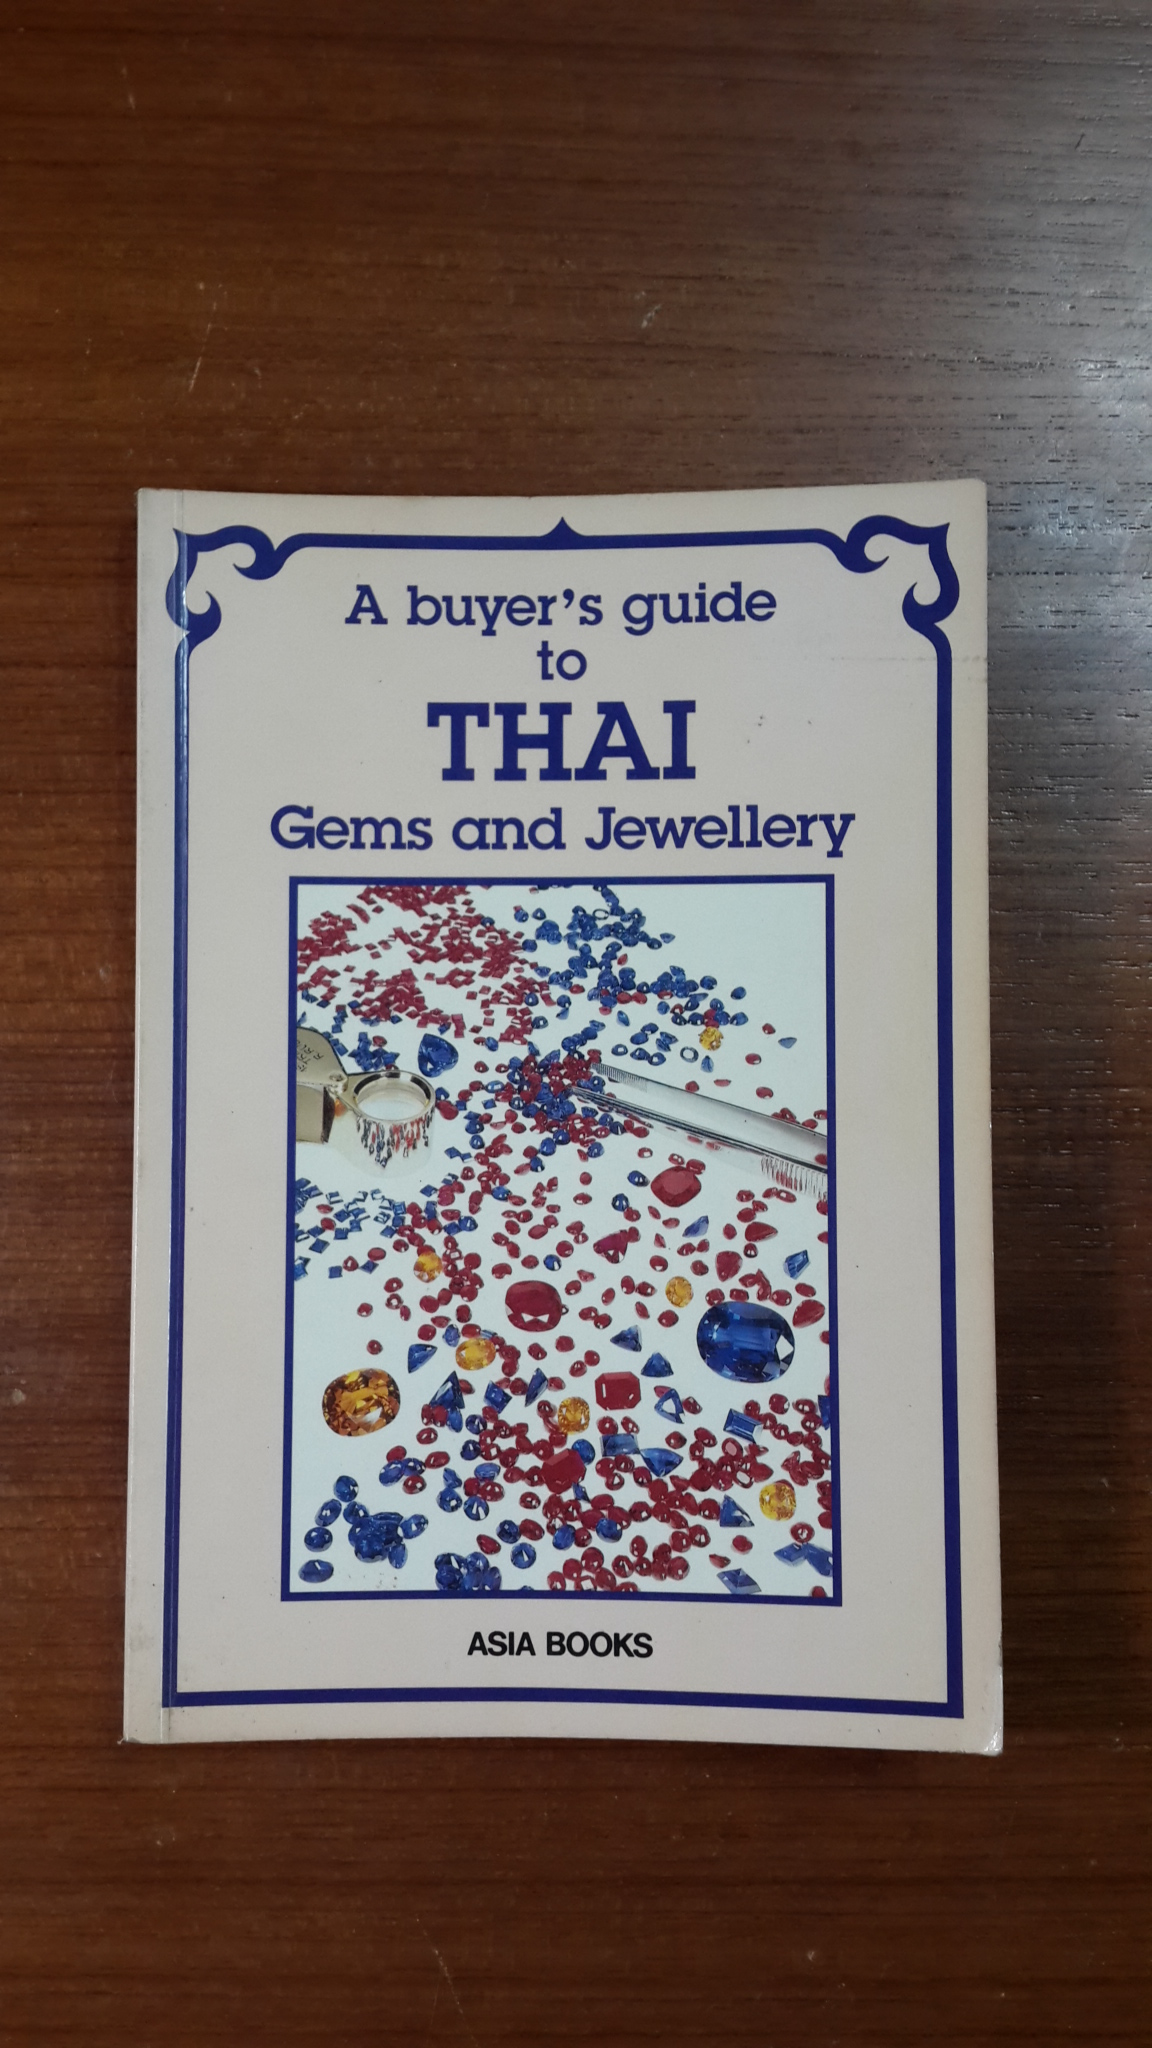 A buyer's guide to THAI Gems and Jewellery / John Hoskin